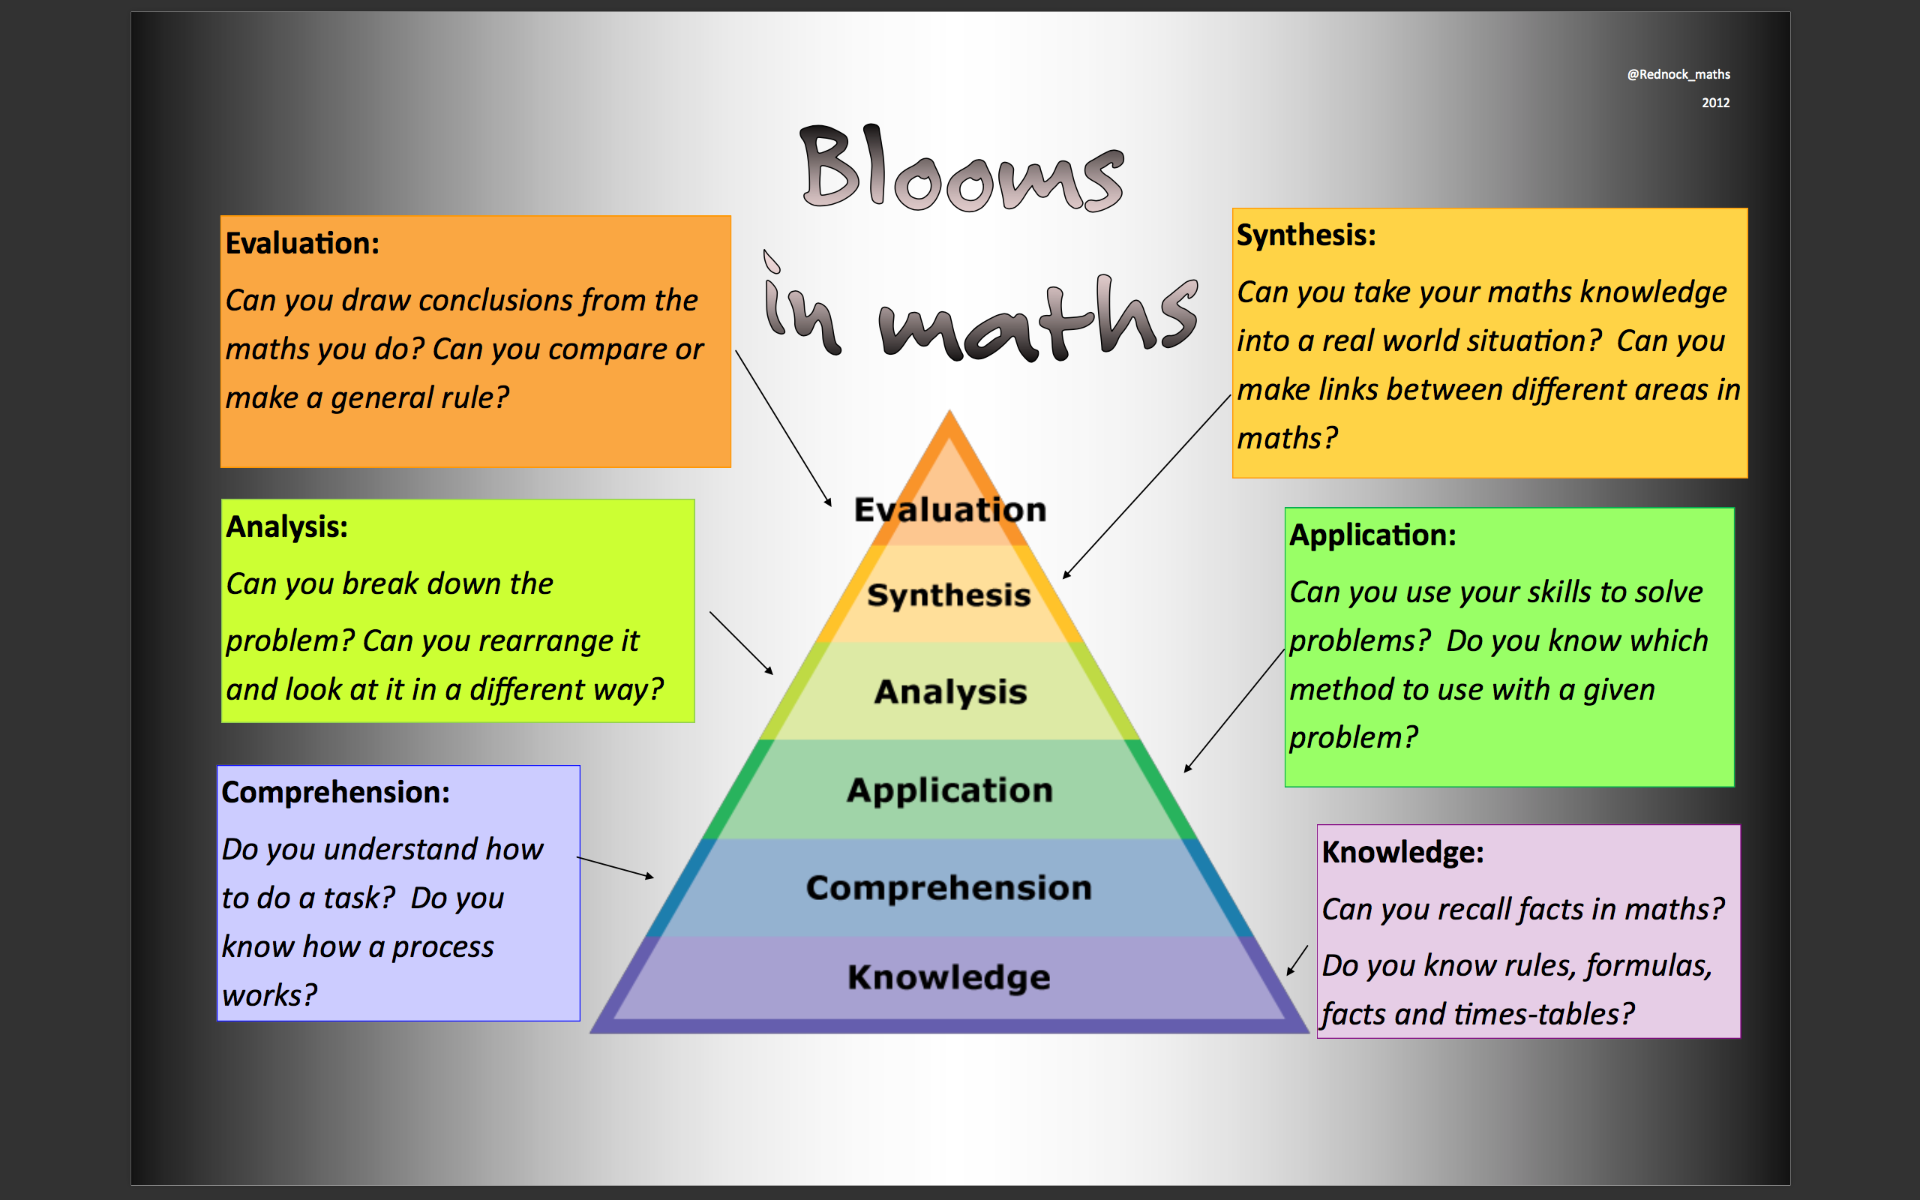 Blooms taxonomy applied to Maths